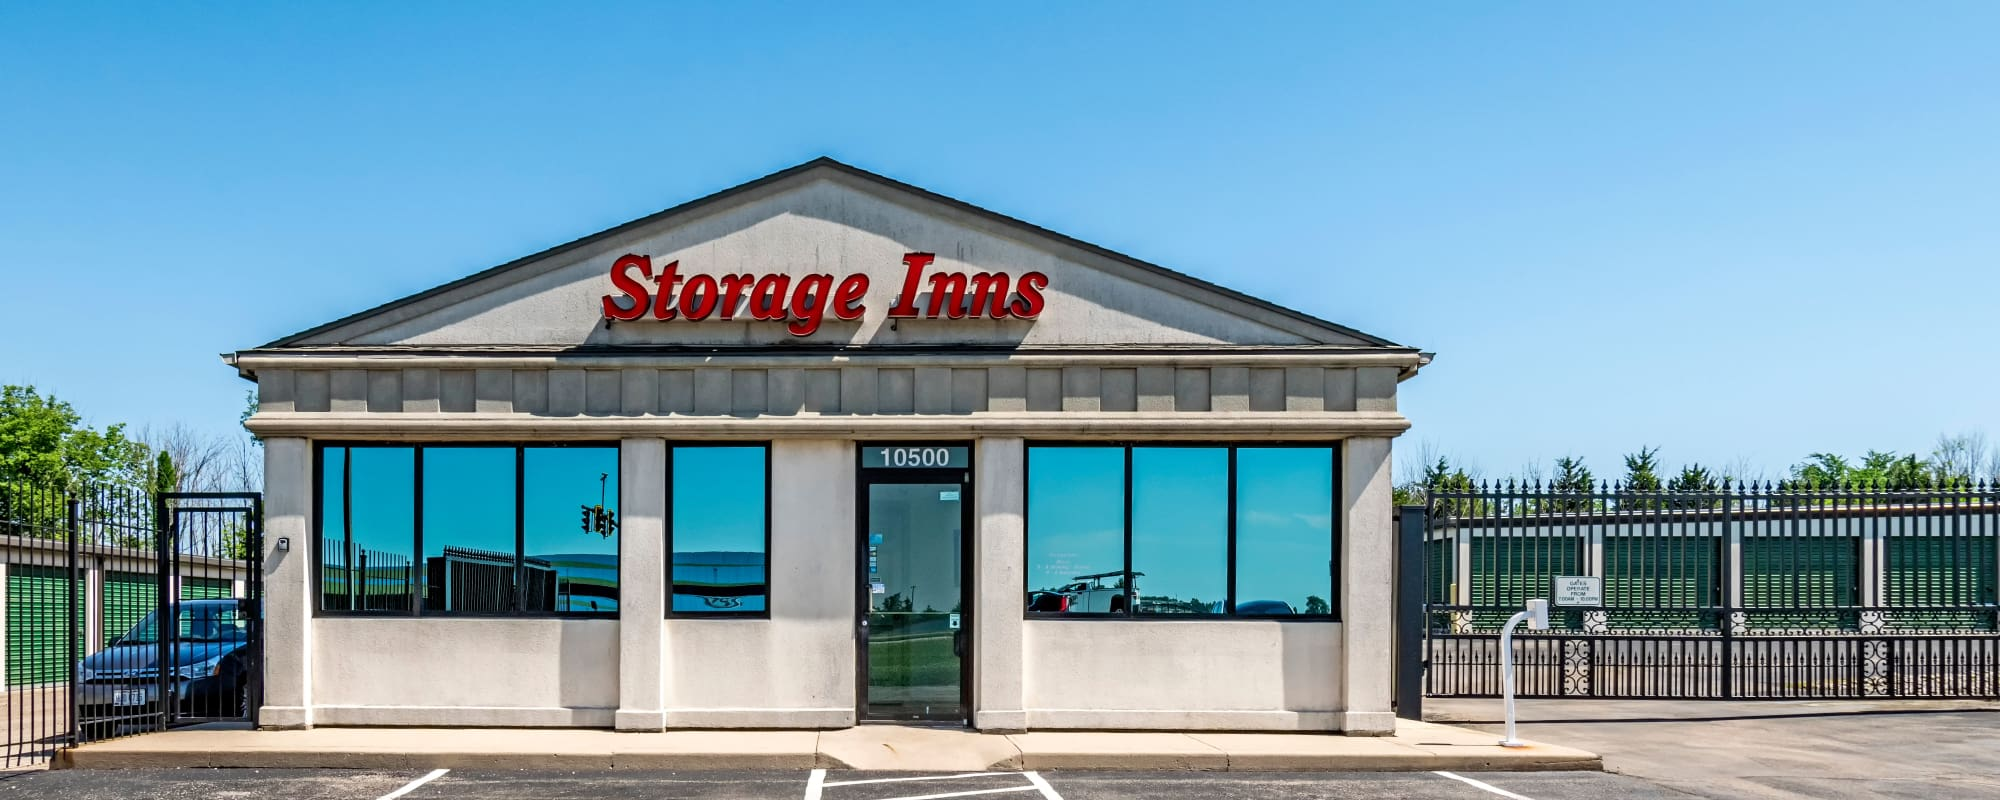 Self storage in Centerville OH